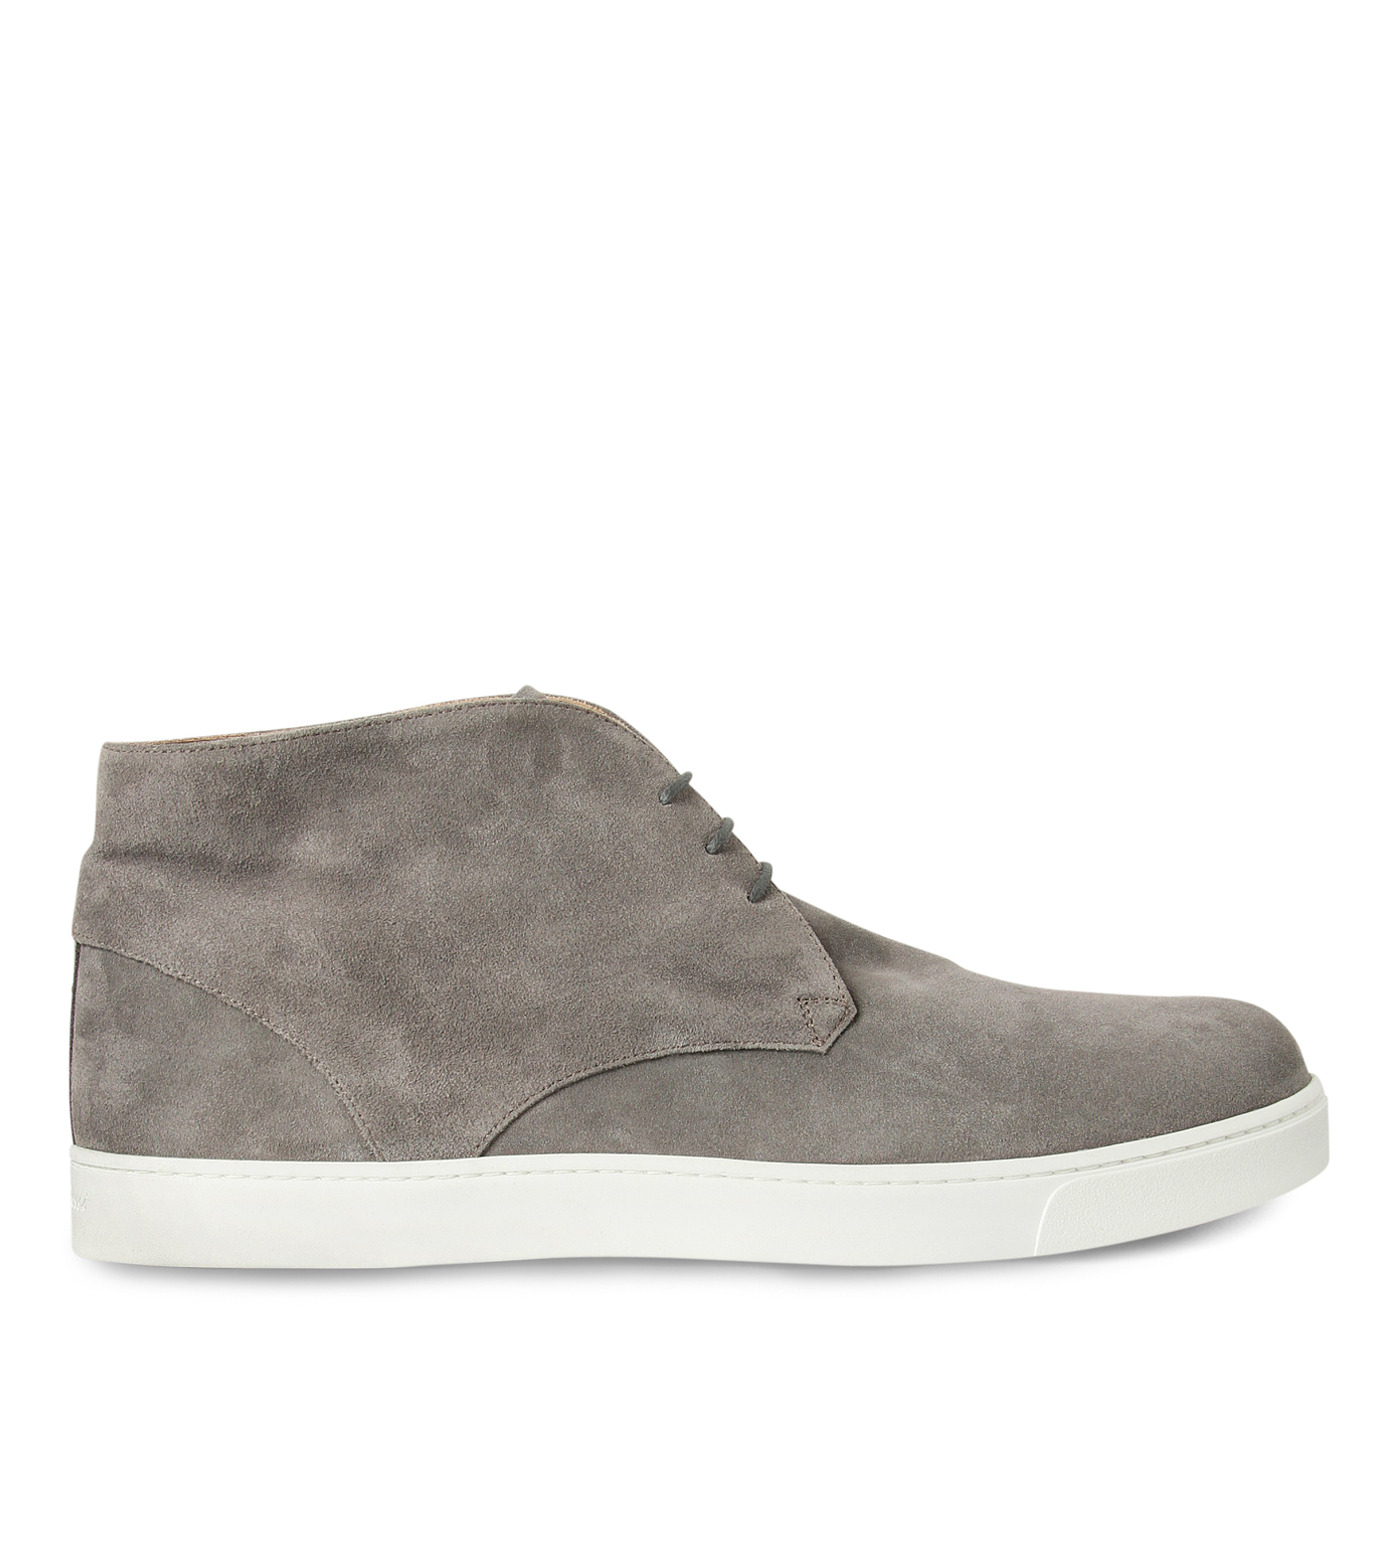 Gianvito Rossi(ジャンヴィト ロッシ)のSuede Lace Up Shoes-GRAY(シューズ/shoes)-GR29420-11 拡大詳細画像1